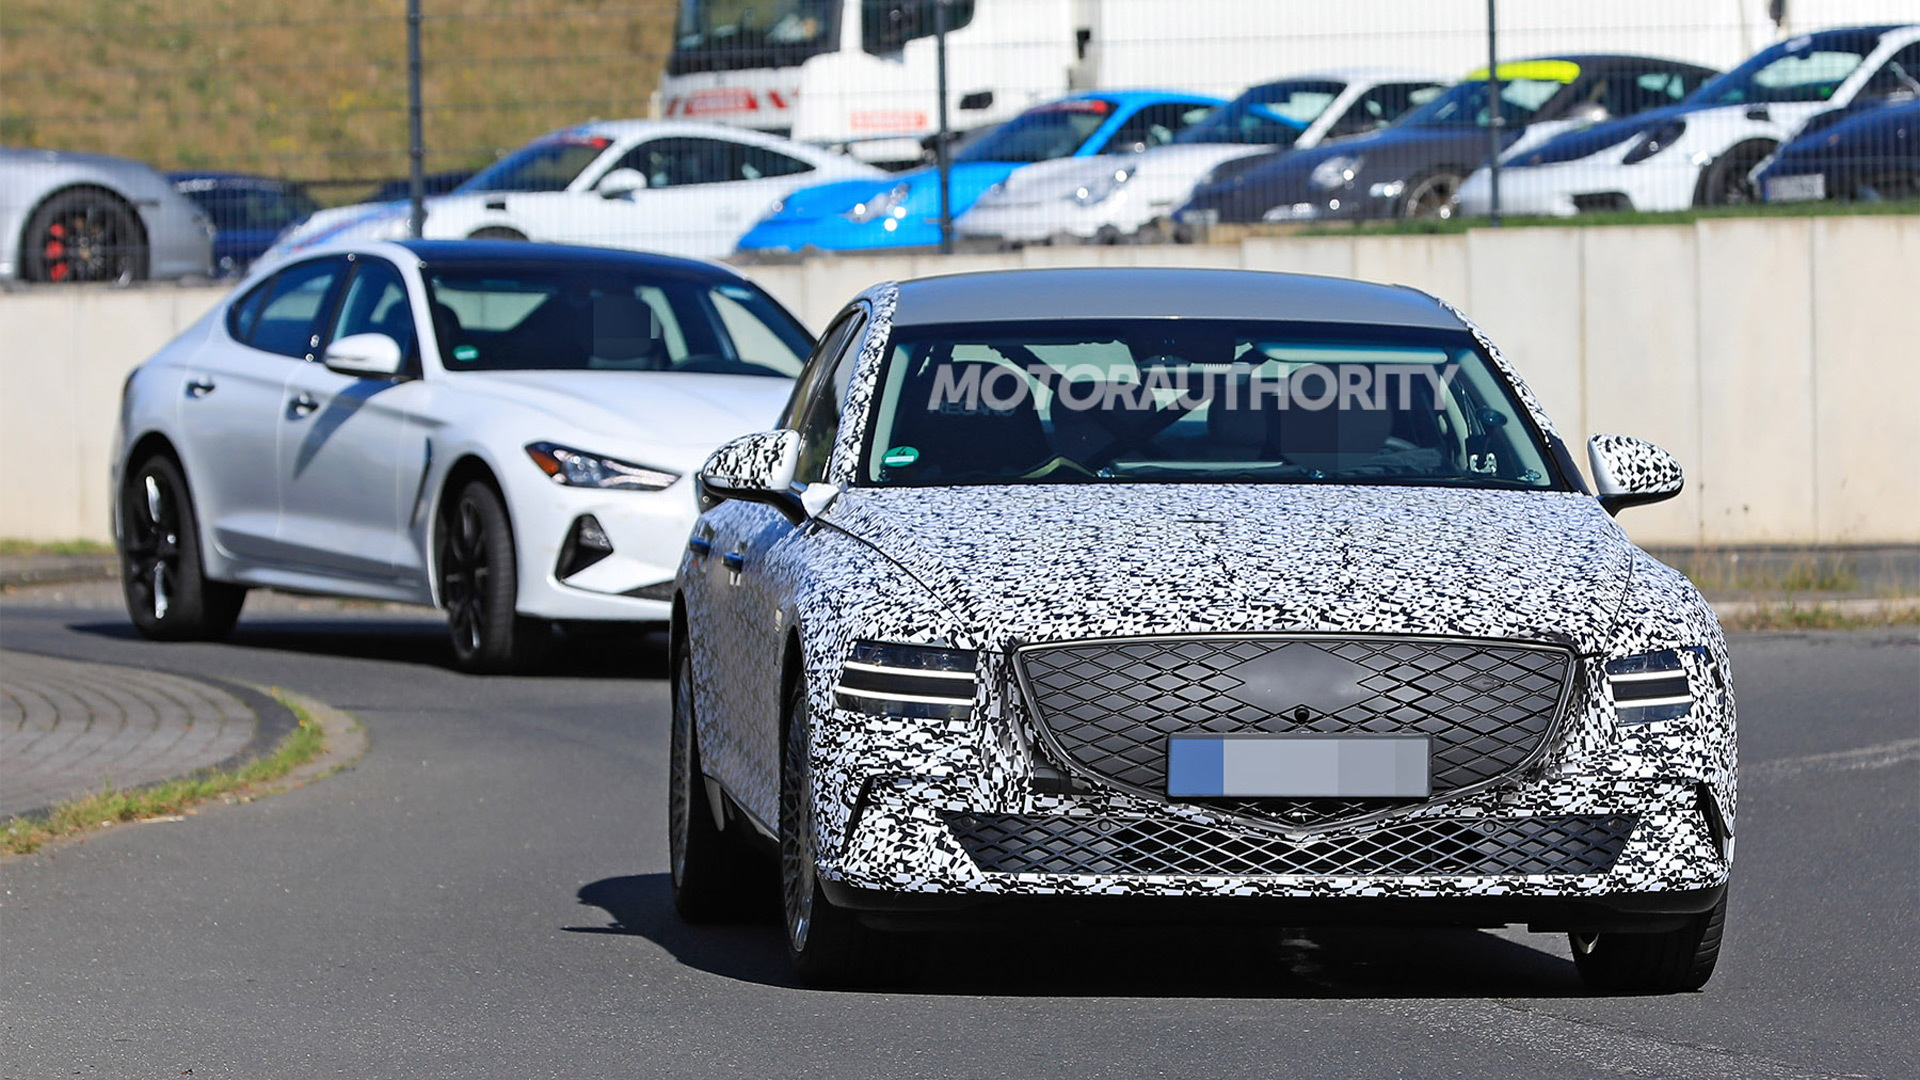 2022 Genesis eG80 spy shots - Photo credit: S. Baldauf/SB-Medien